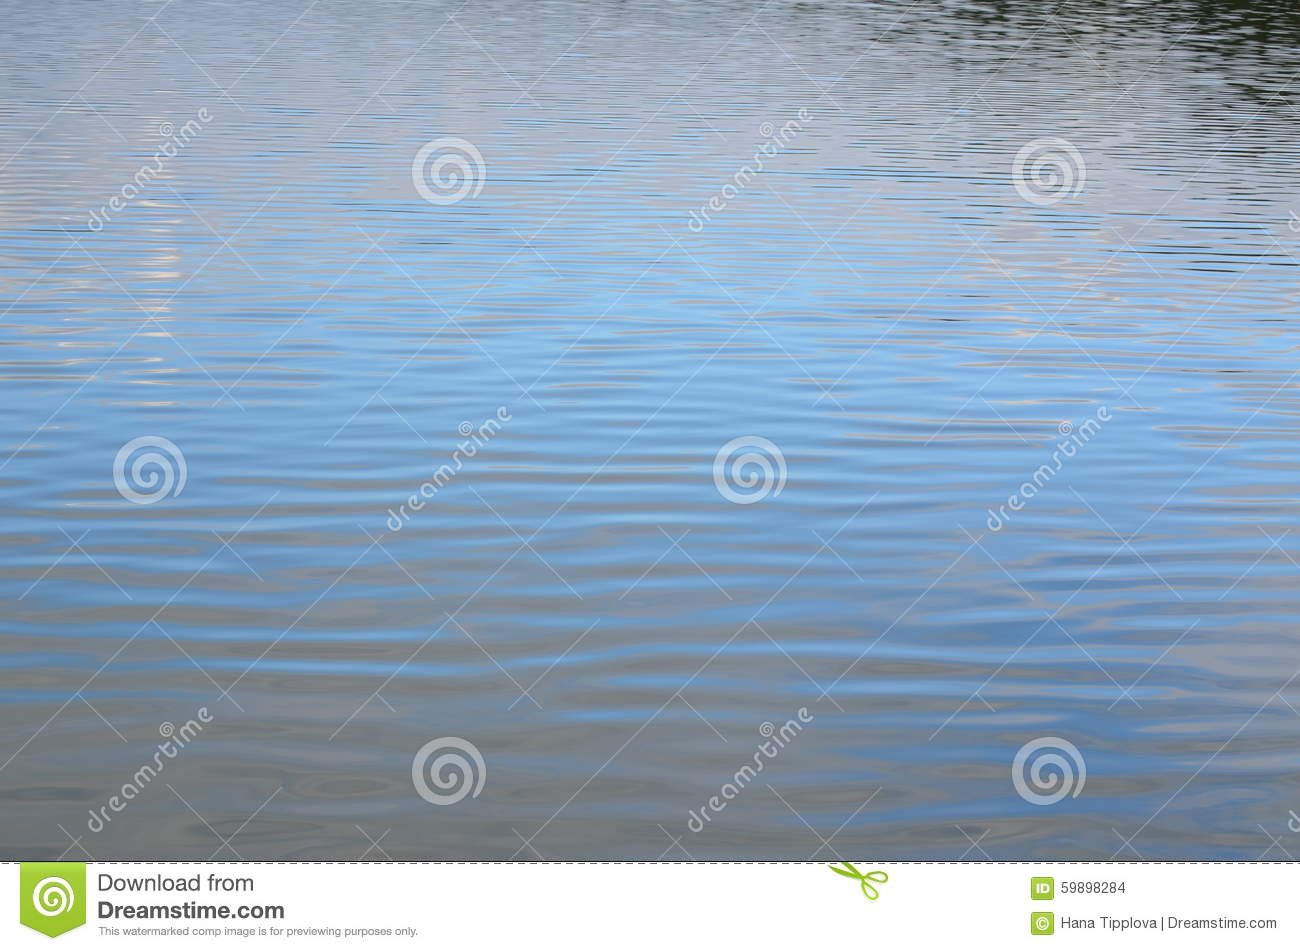 Water level of the pond